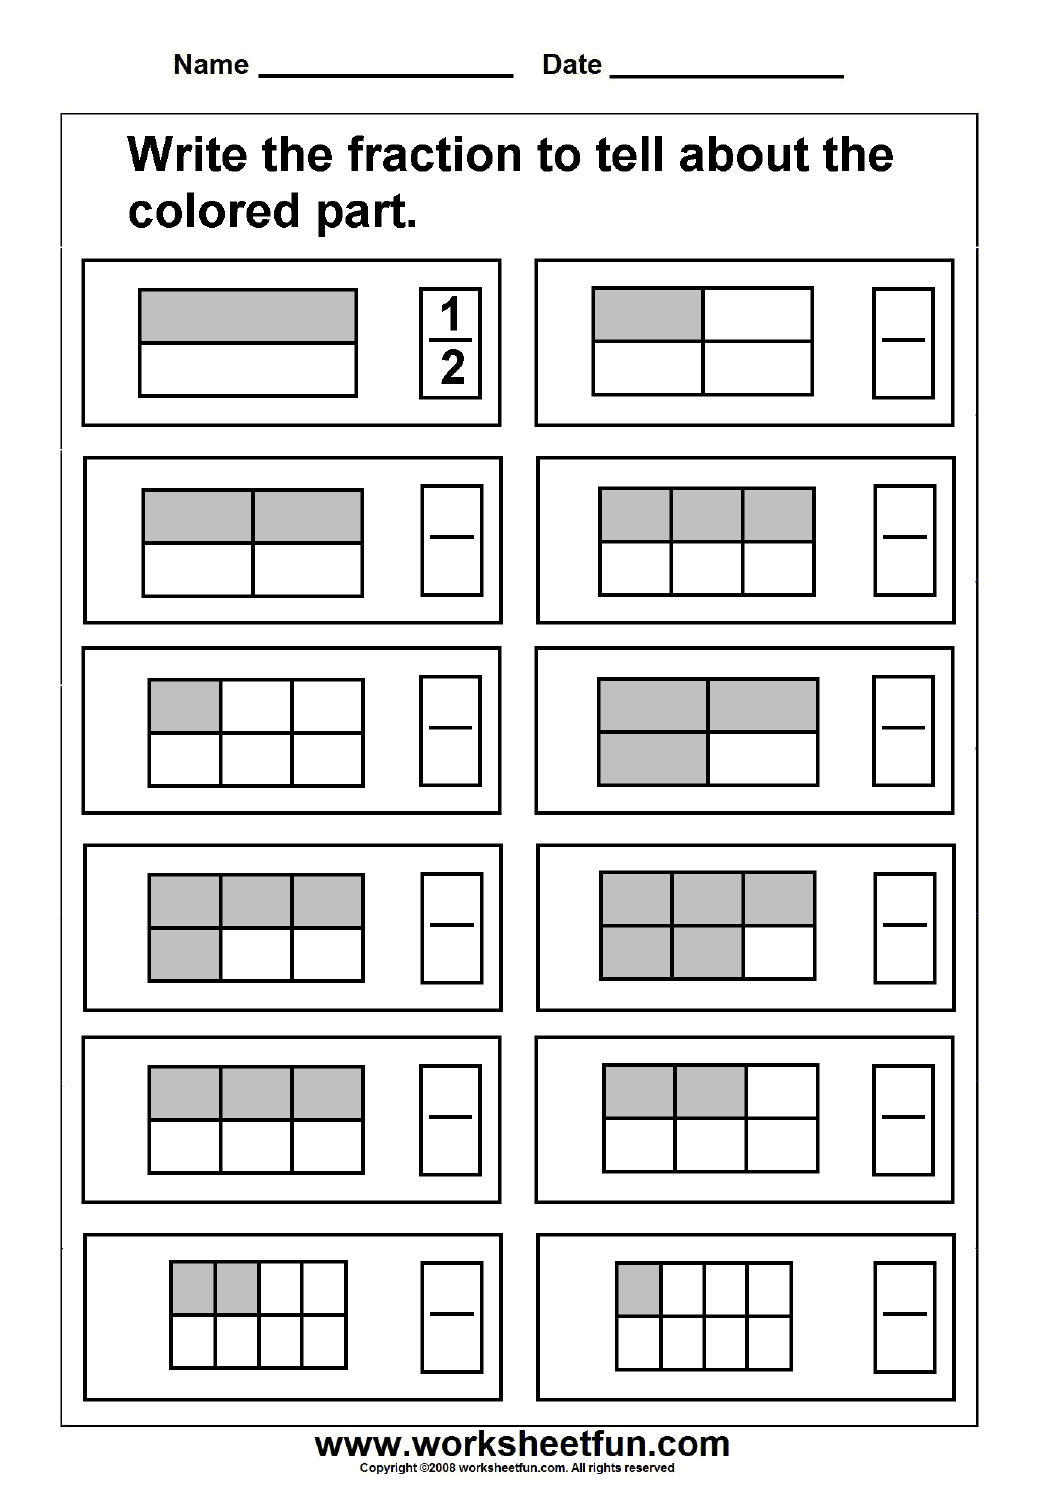 worksheet Worksheet Fractions fraction model free printable worksheets worksheetfun 3 worksheets